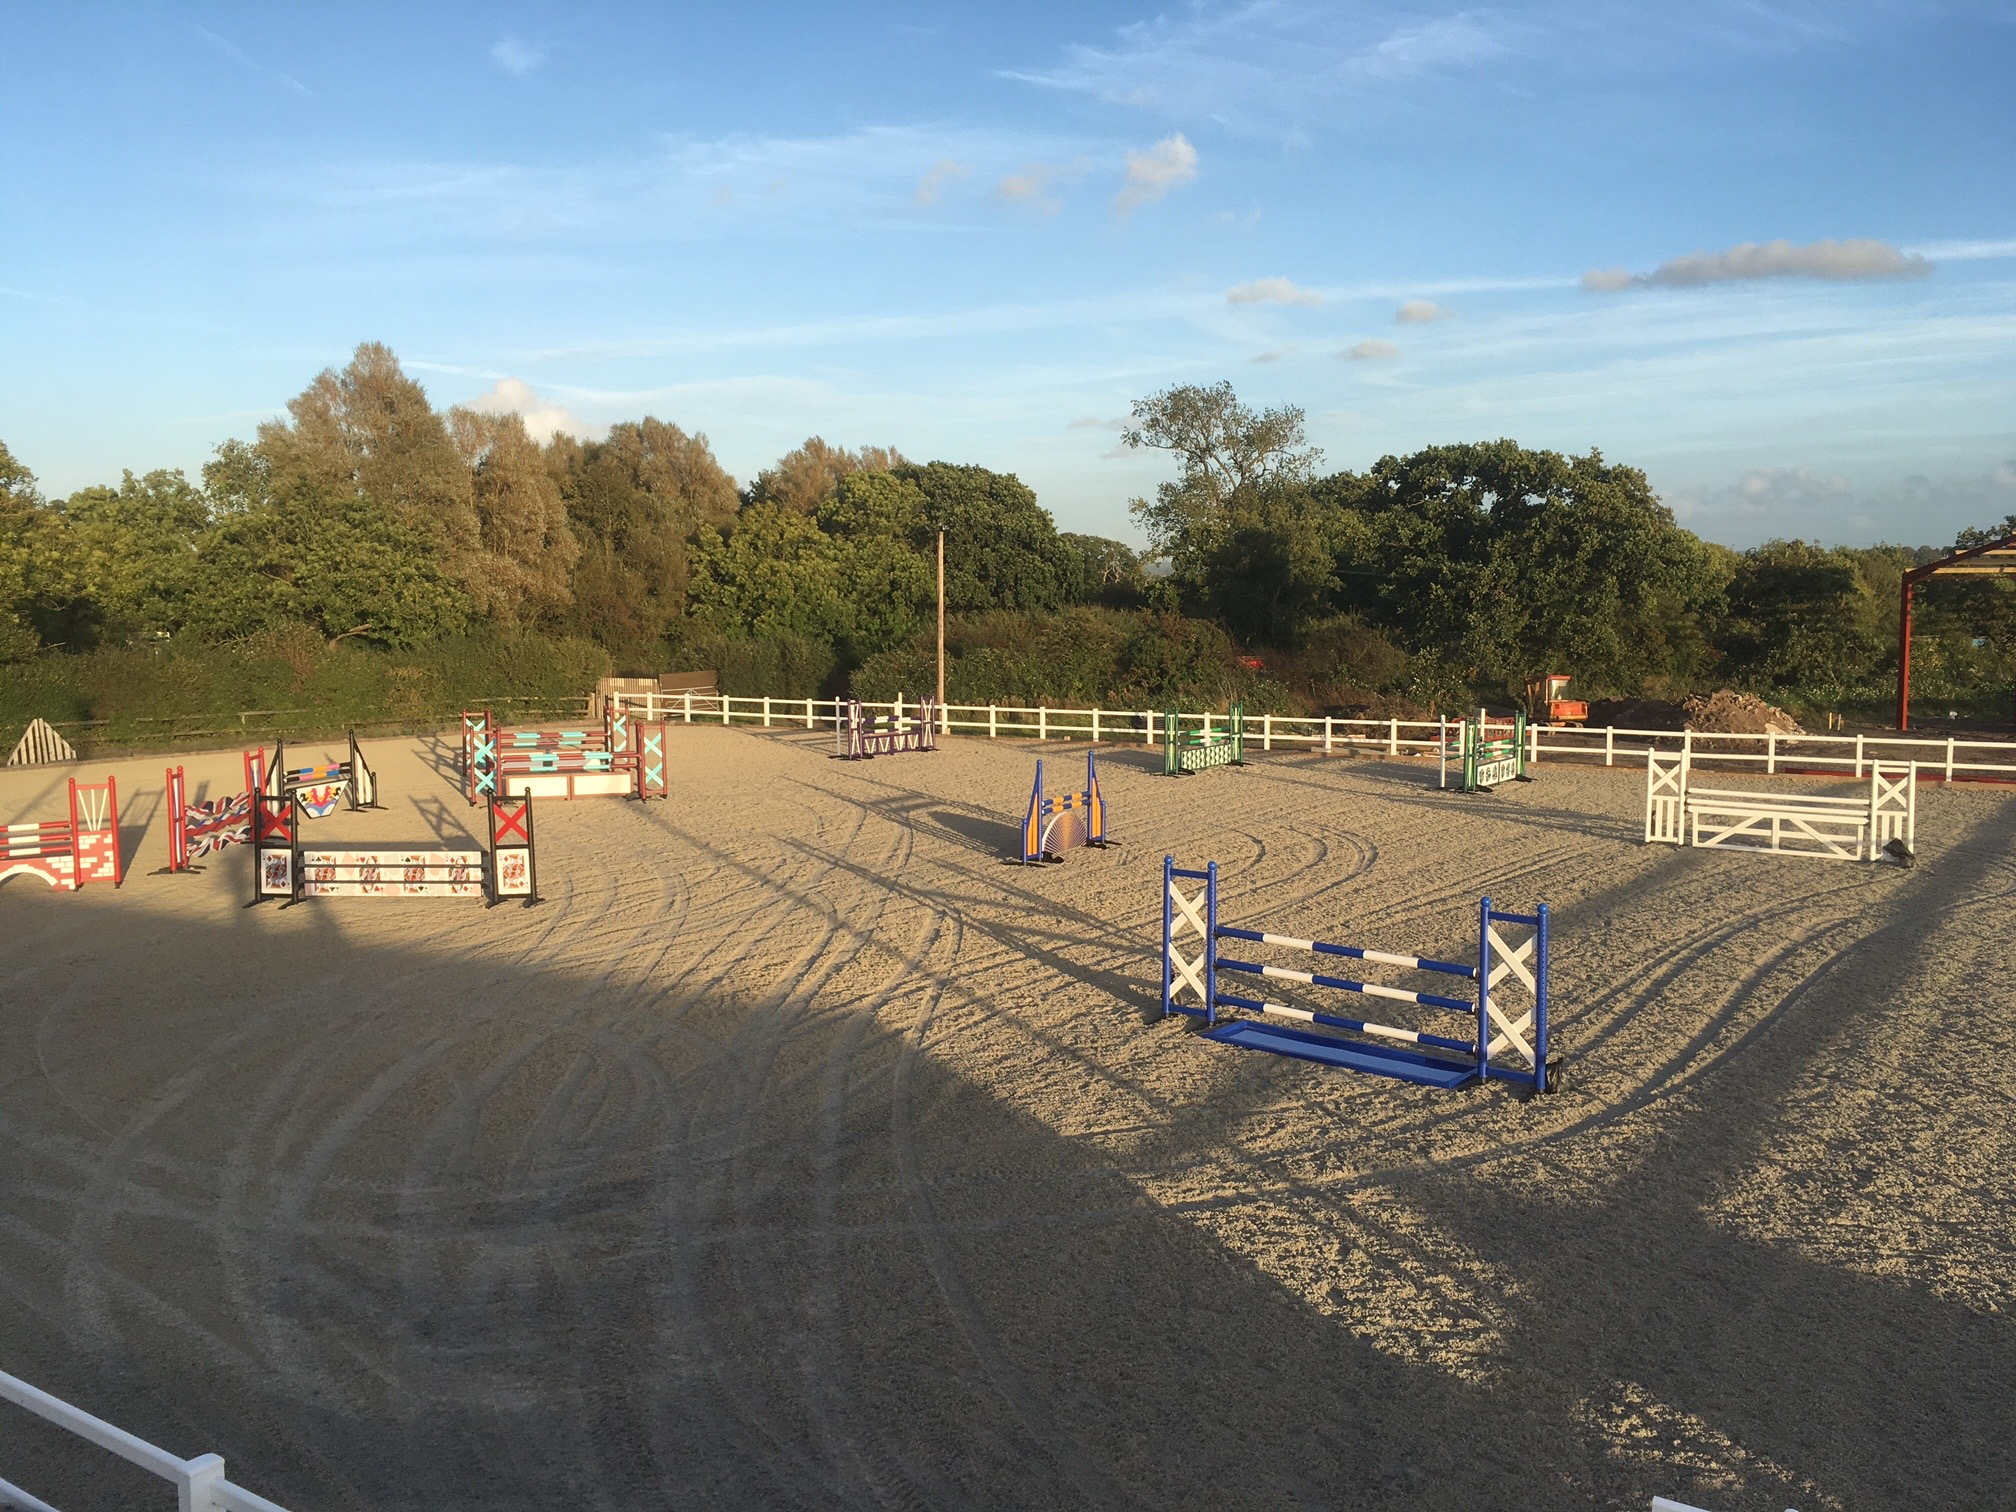 JUMPING ARENA